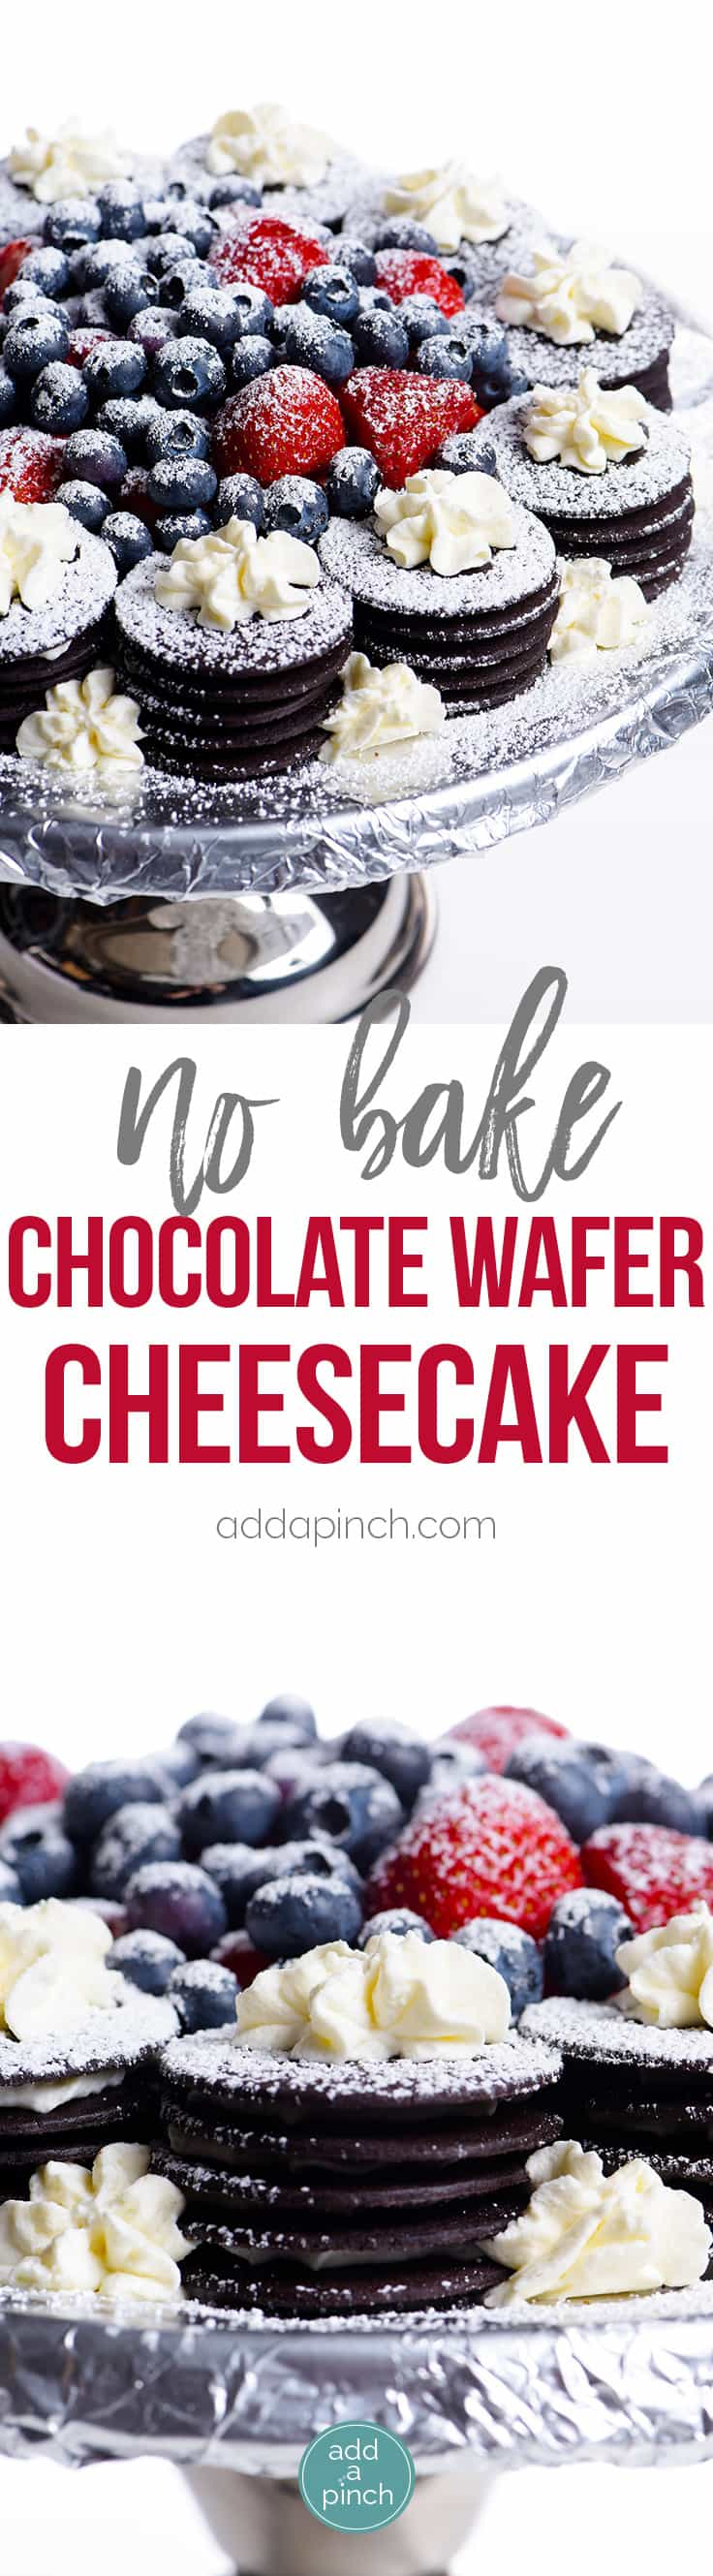 No Bake Chocolate Wafer Cheesecake Recipe - This easy no bake cheesecake recipe comes together quickly for a beautiful, yet simple dessert! // addapinch.com